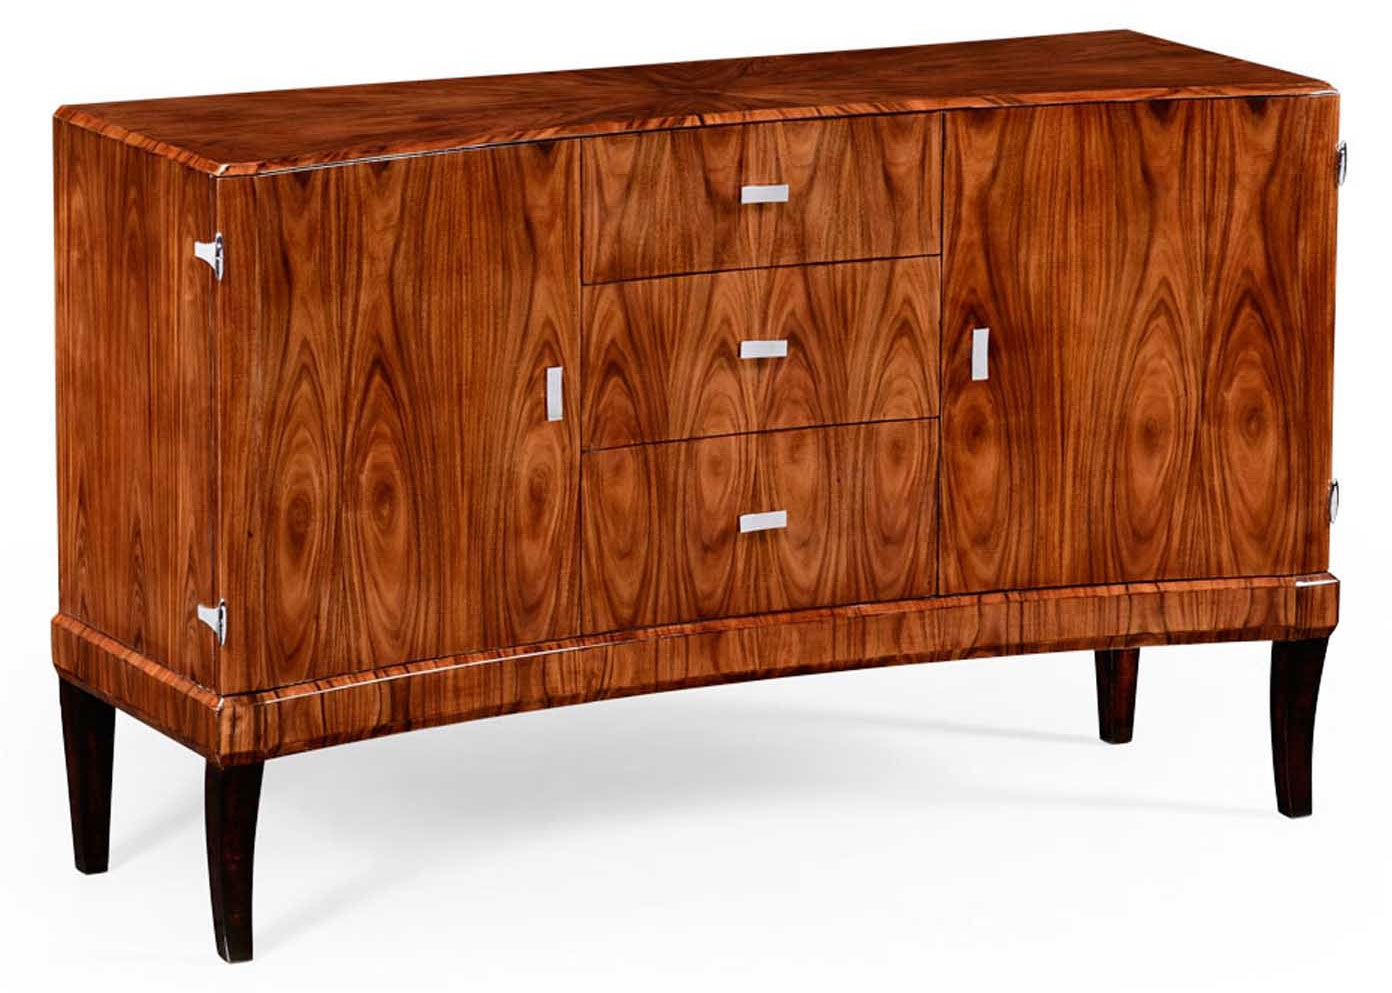 Deco style sideboard with curved front - Deko sideboard ...